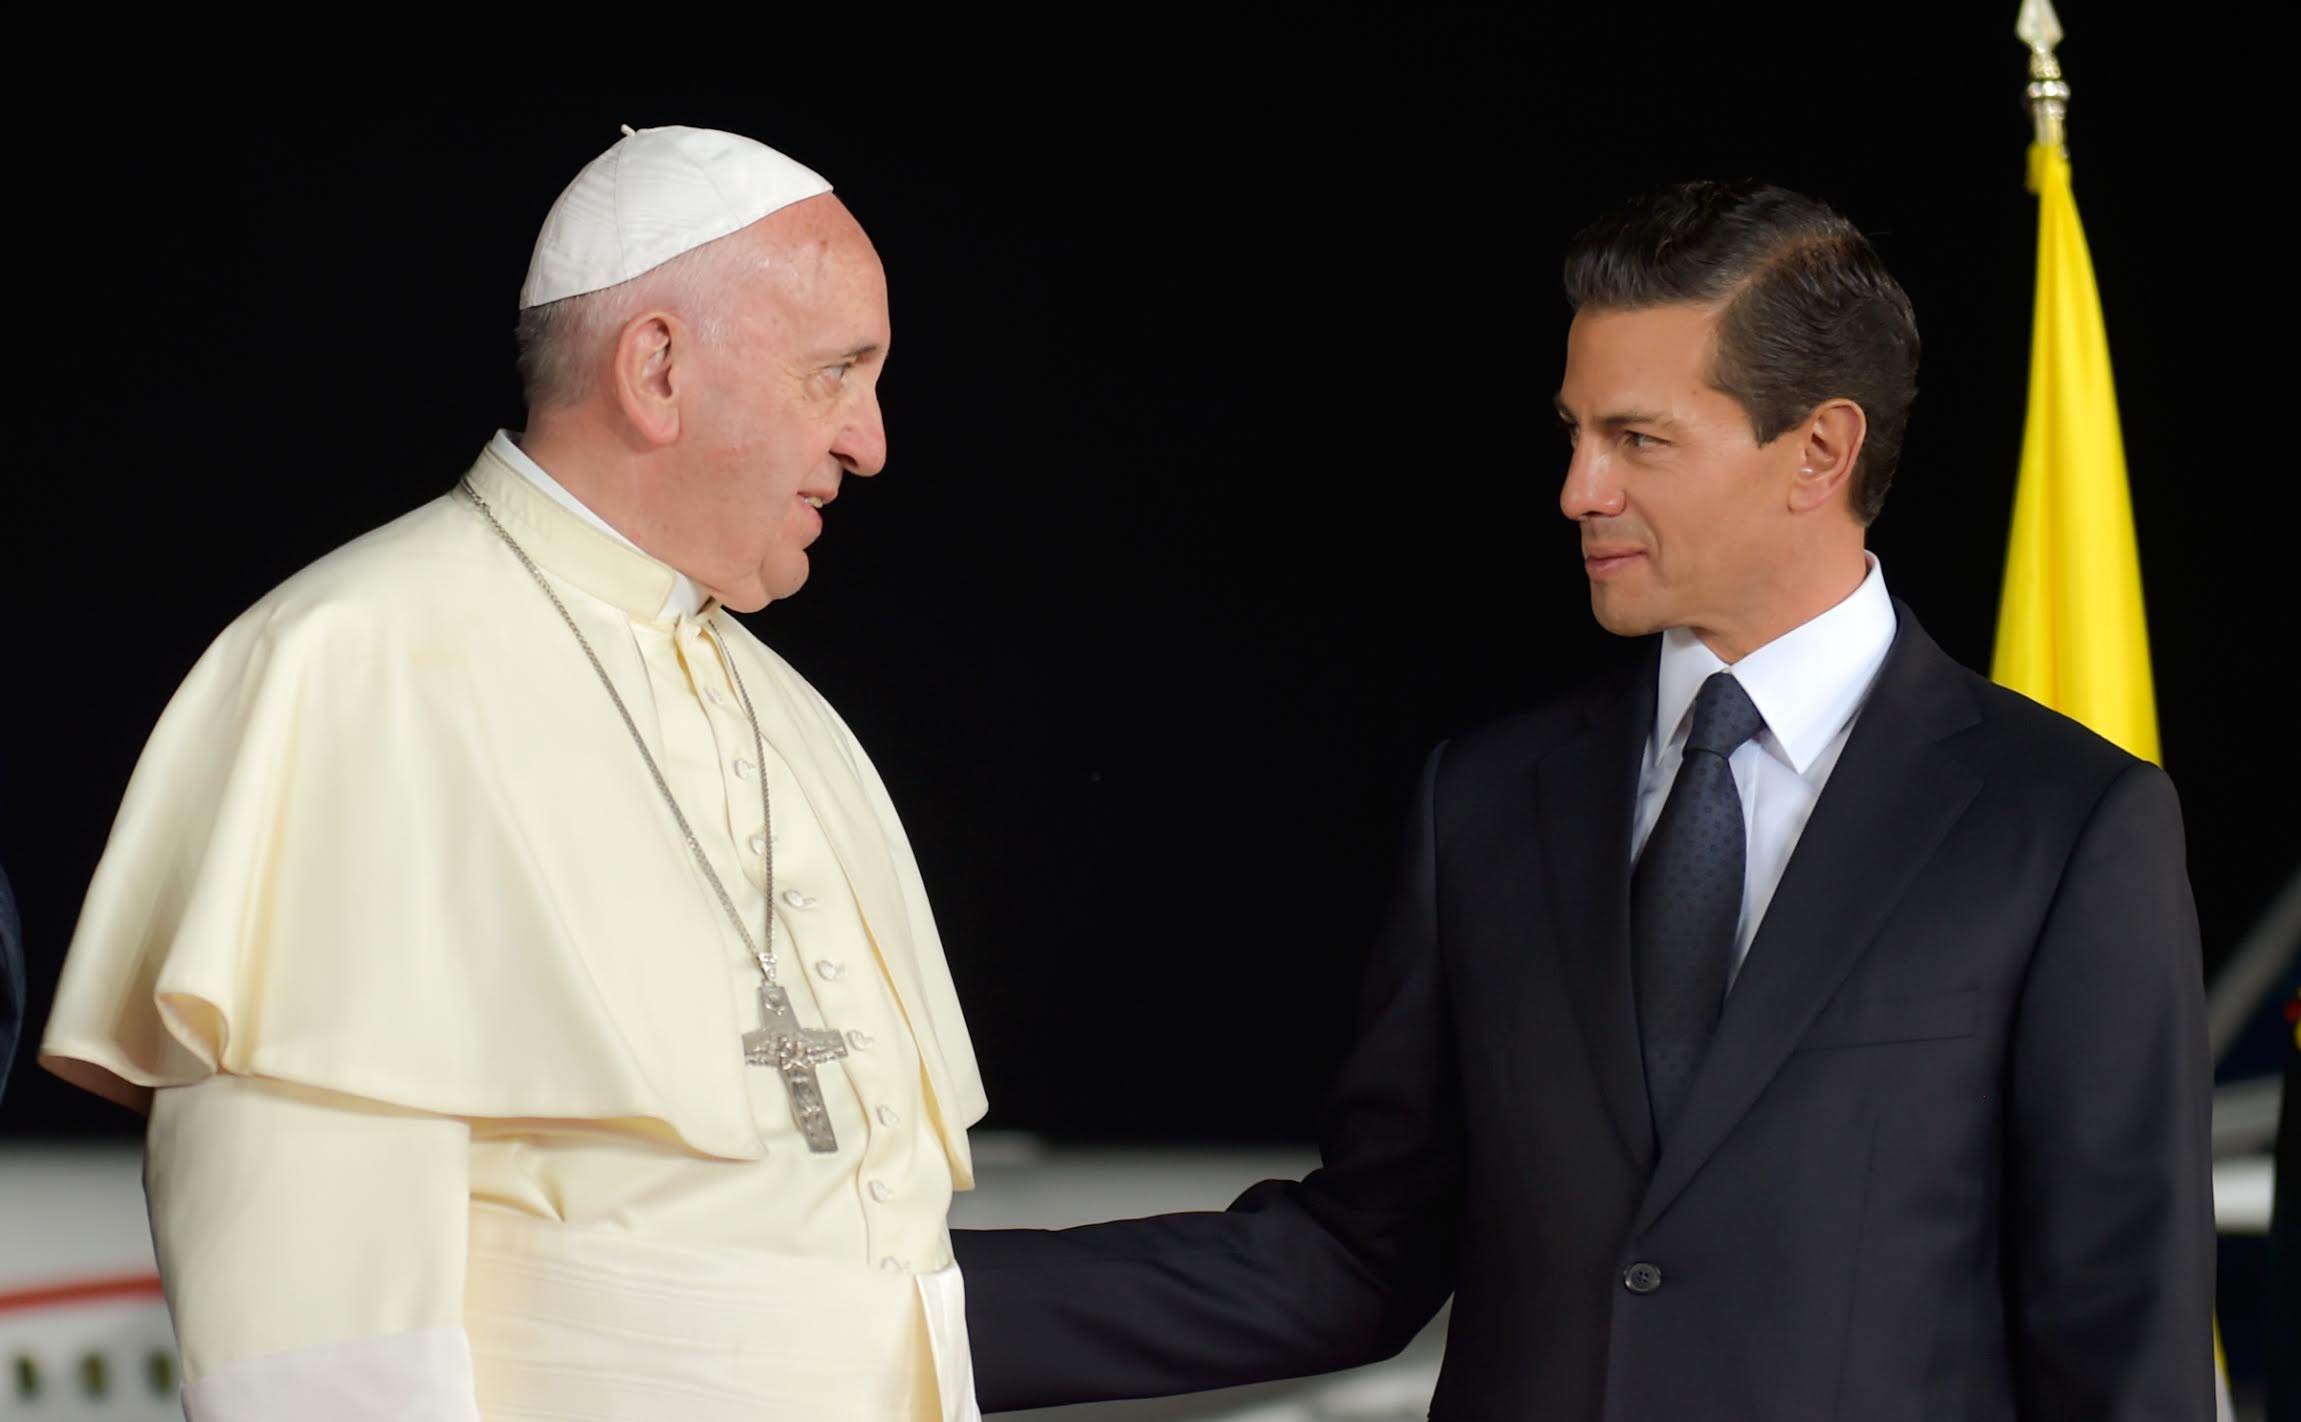 In an emotional ceremony at Abraham González International Airport in Ciudad Juárez, the Mexican president and his wife bid farewell to the Pope at the foot of the airstairs of the plane taking him back to Rome.